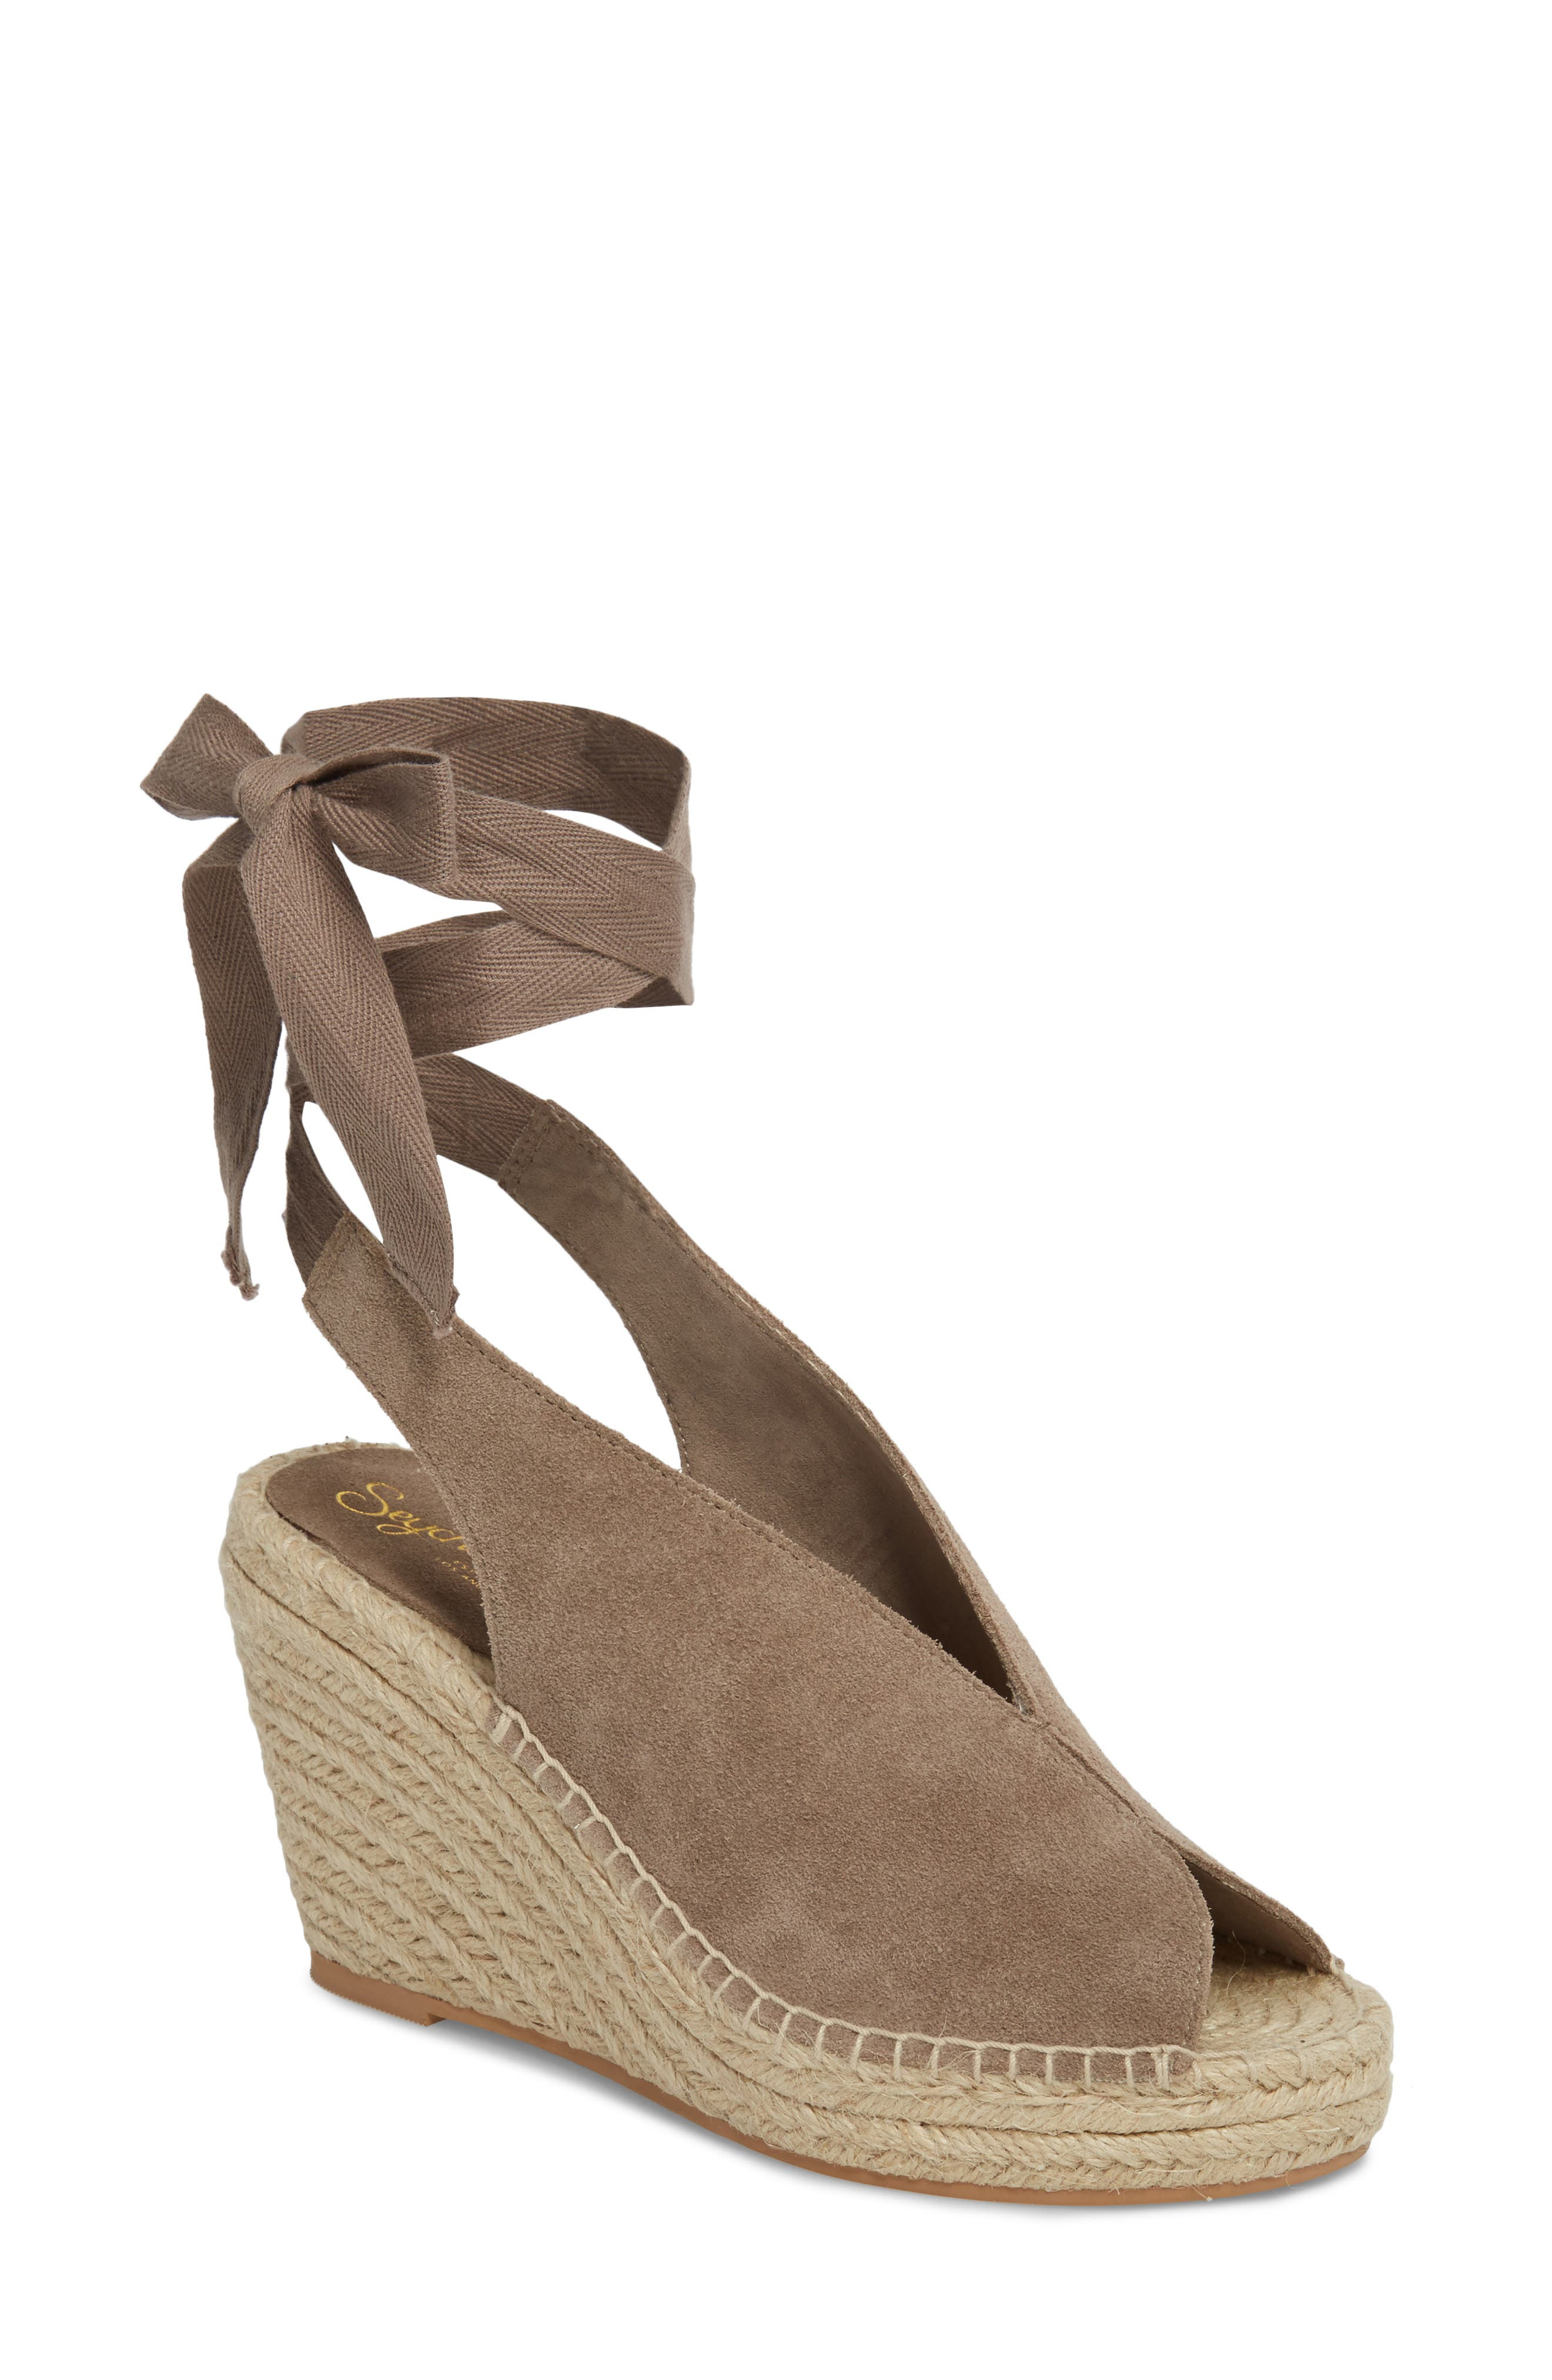 Interrelated Espadrille Wedge Sandal,                         Main,                         color, Taupe Suede